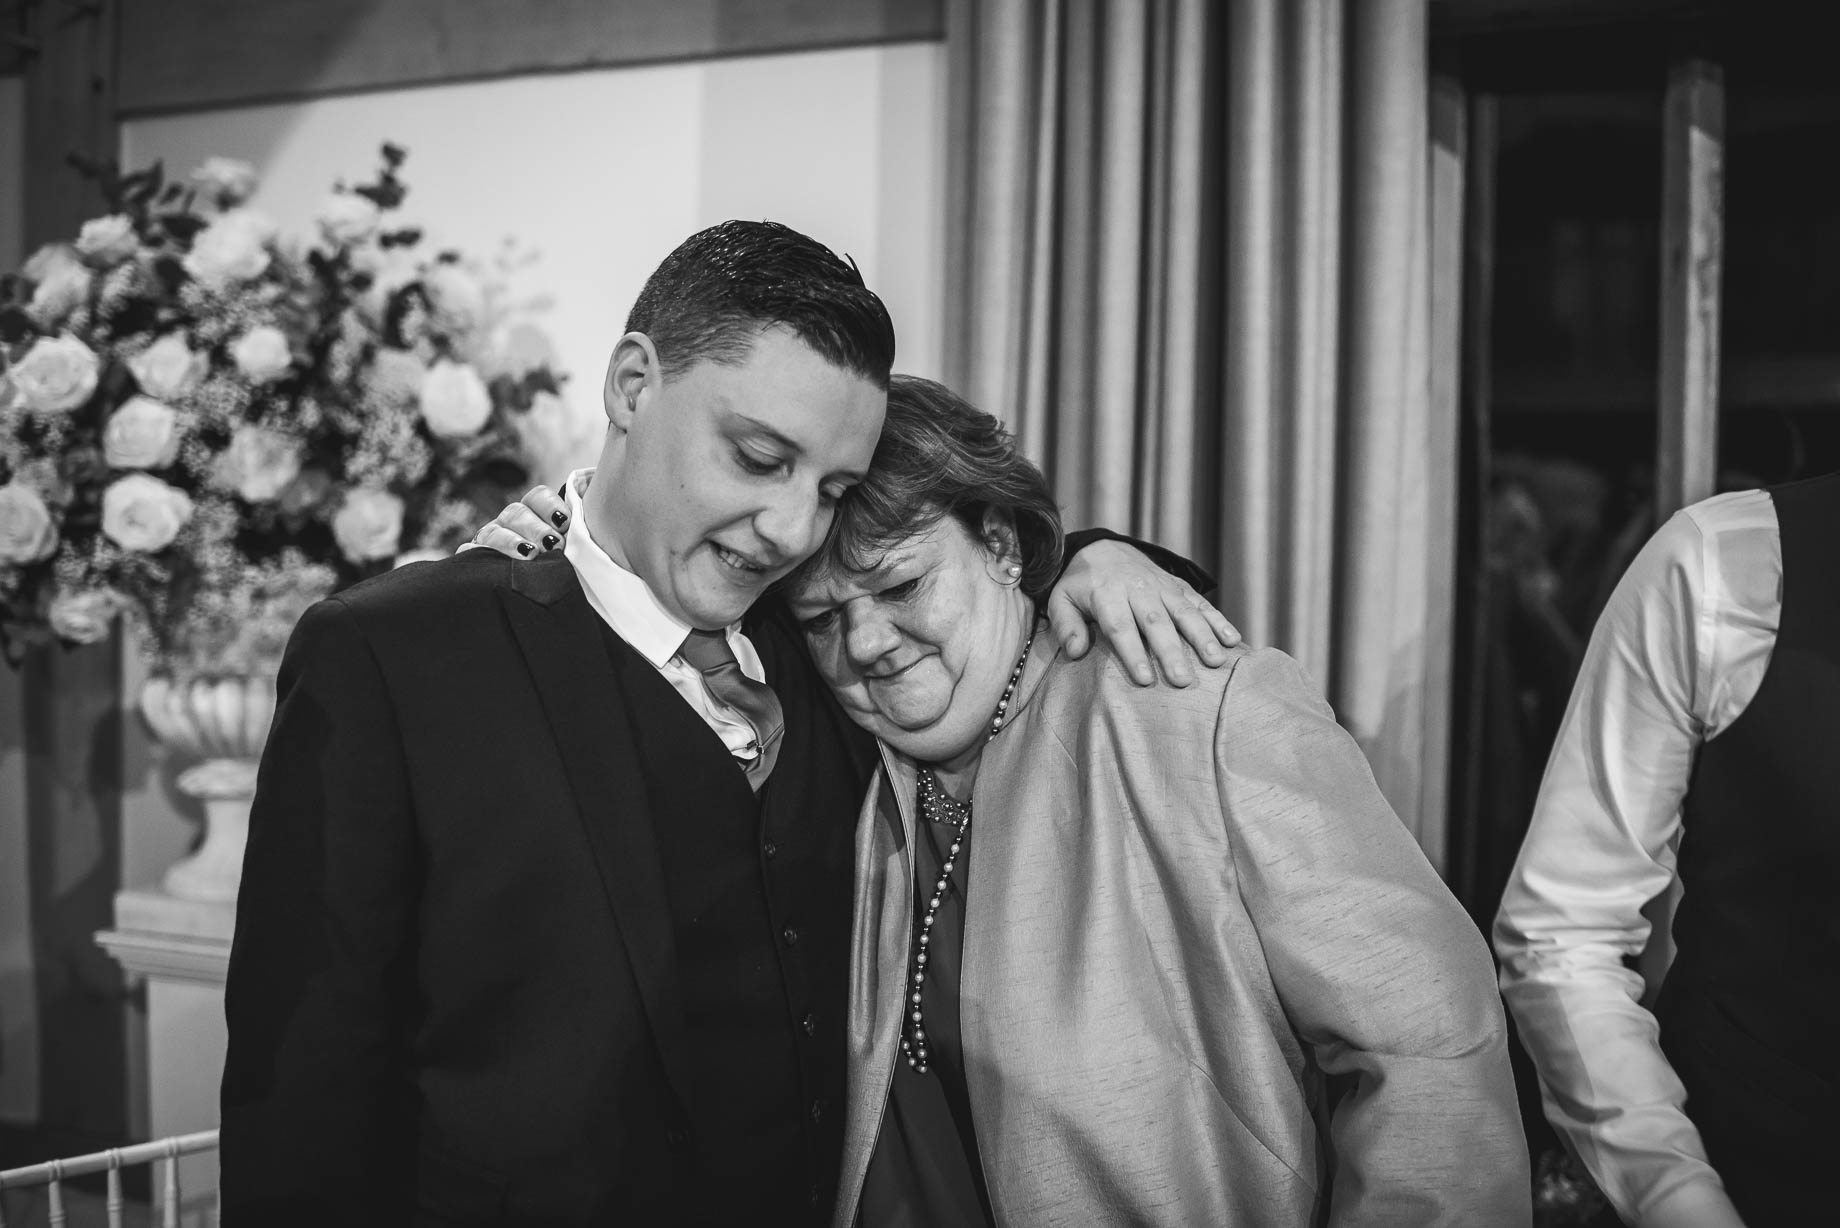 Cain Manor wedding photography - Alex and Jamie (137 of 154)